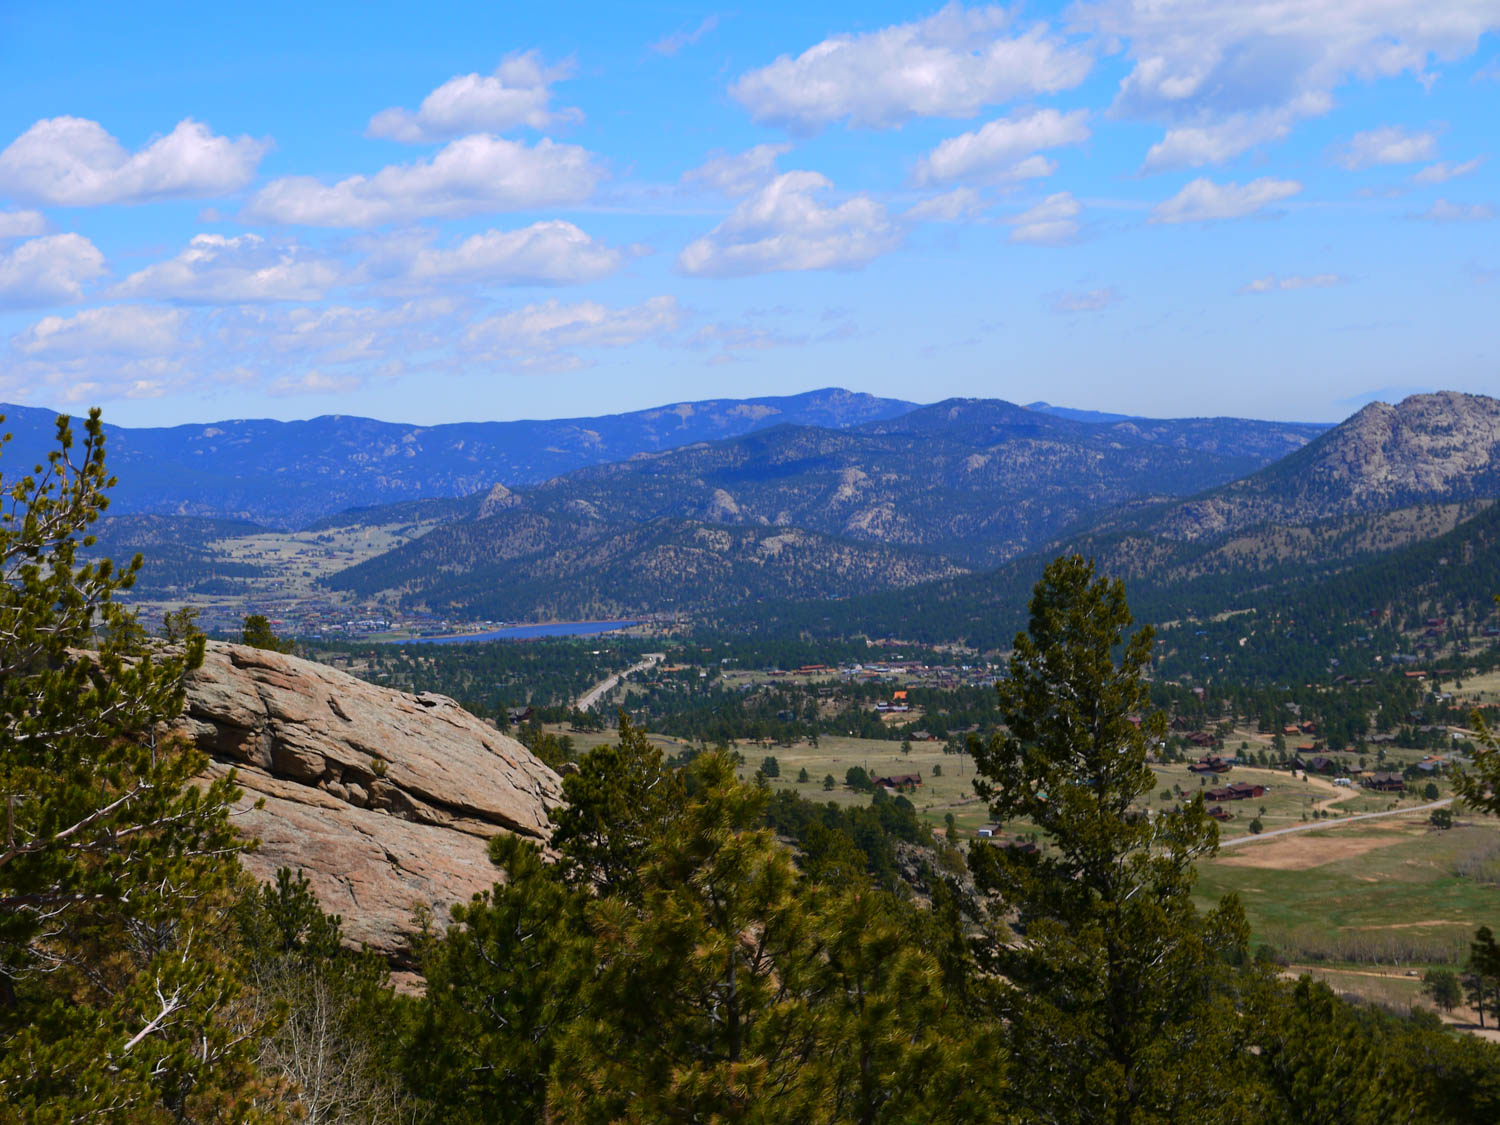 panoramic view of valley beyond longs peak on a clear day